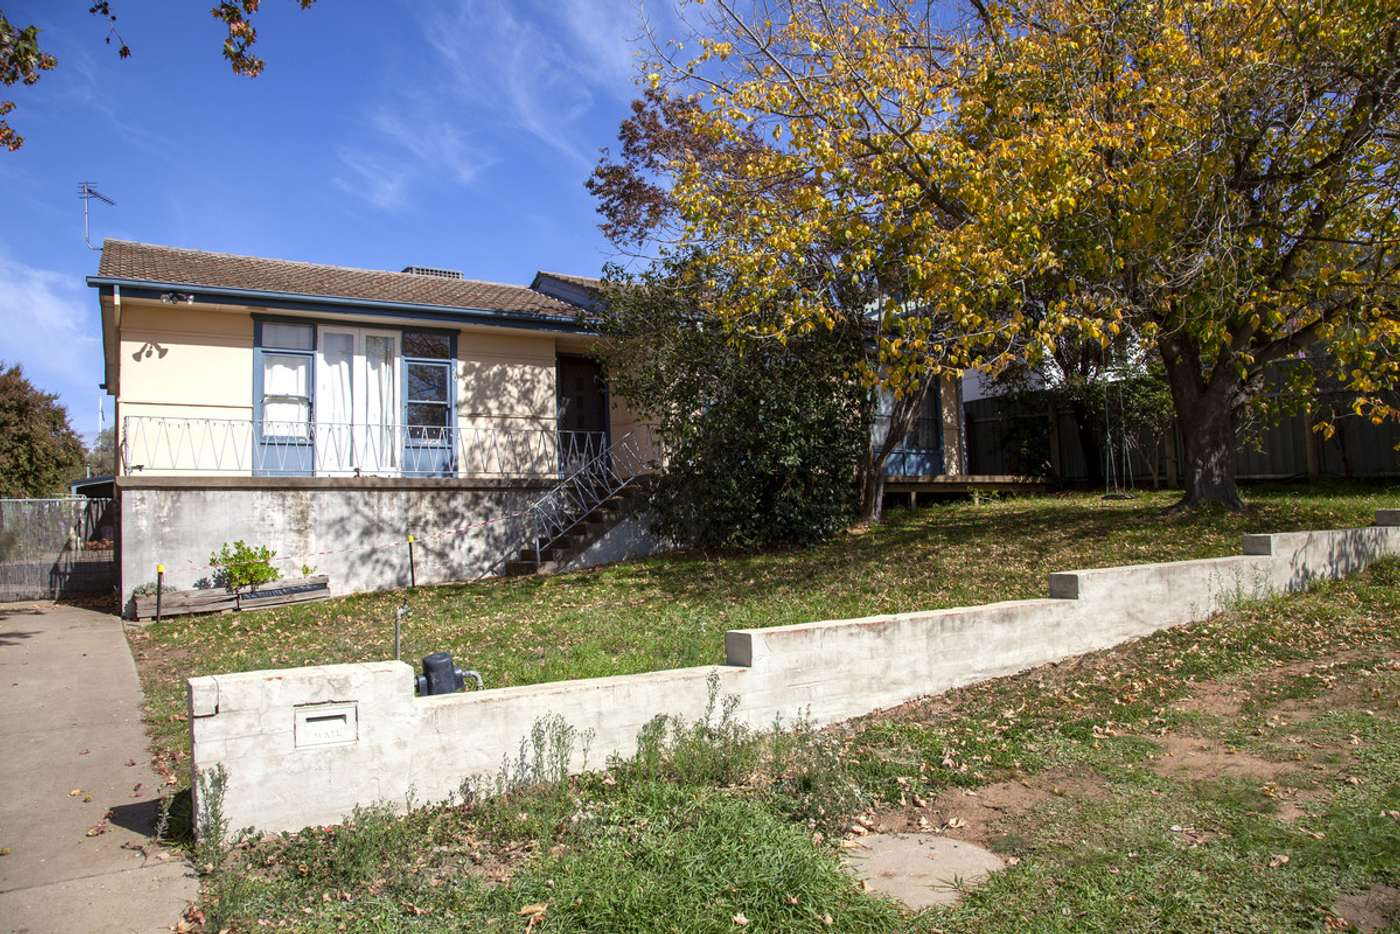 Main view of Homely house listing, 20 Copland Street, Wagga Wagga NSW 2650